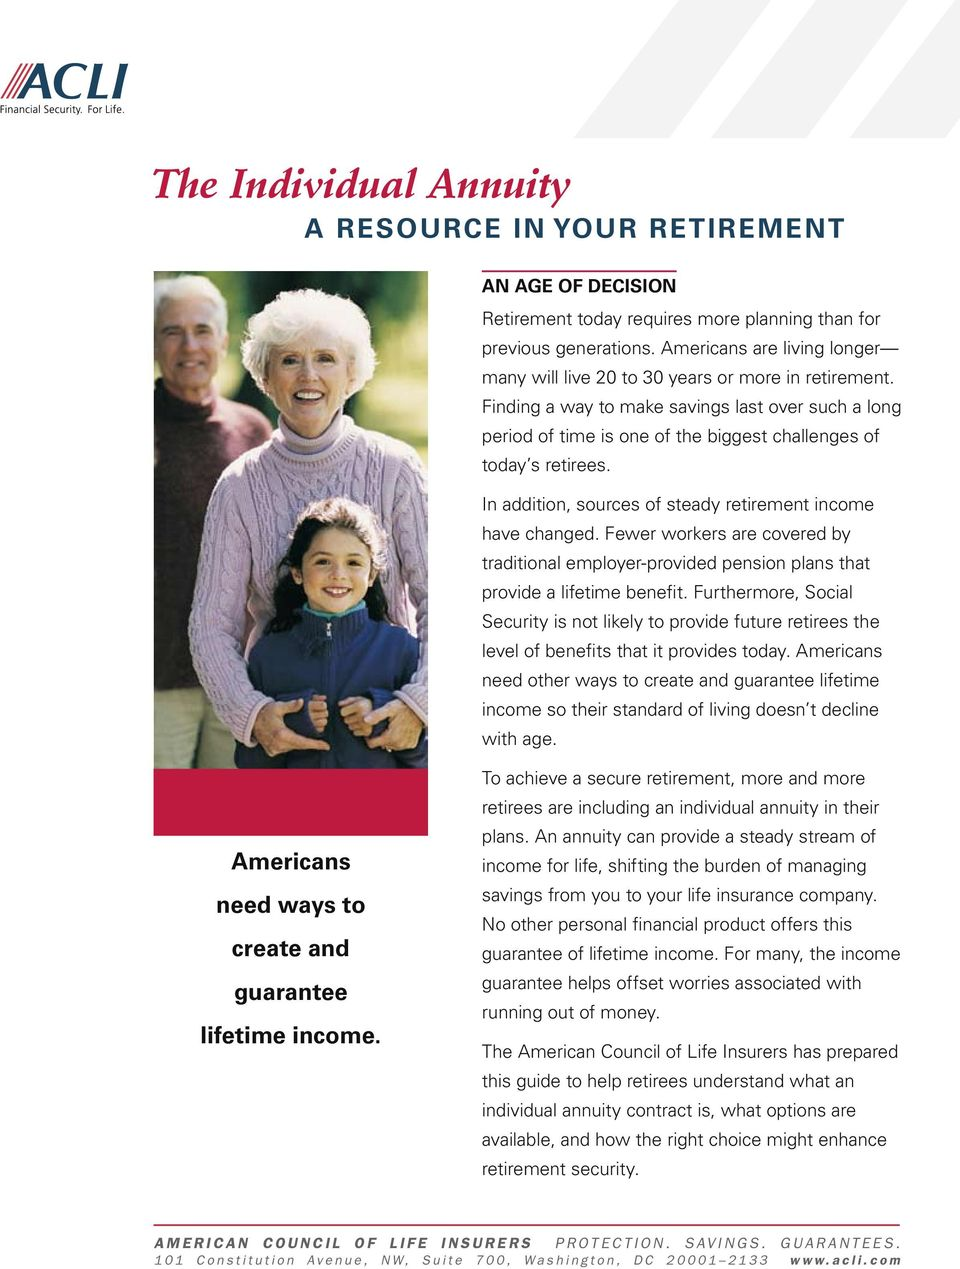 Finding a way to make savings last over such a long period of time is one of the biggest challenges of today s retirees. In addition, sources of steady retirement income have changed.